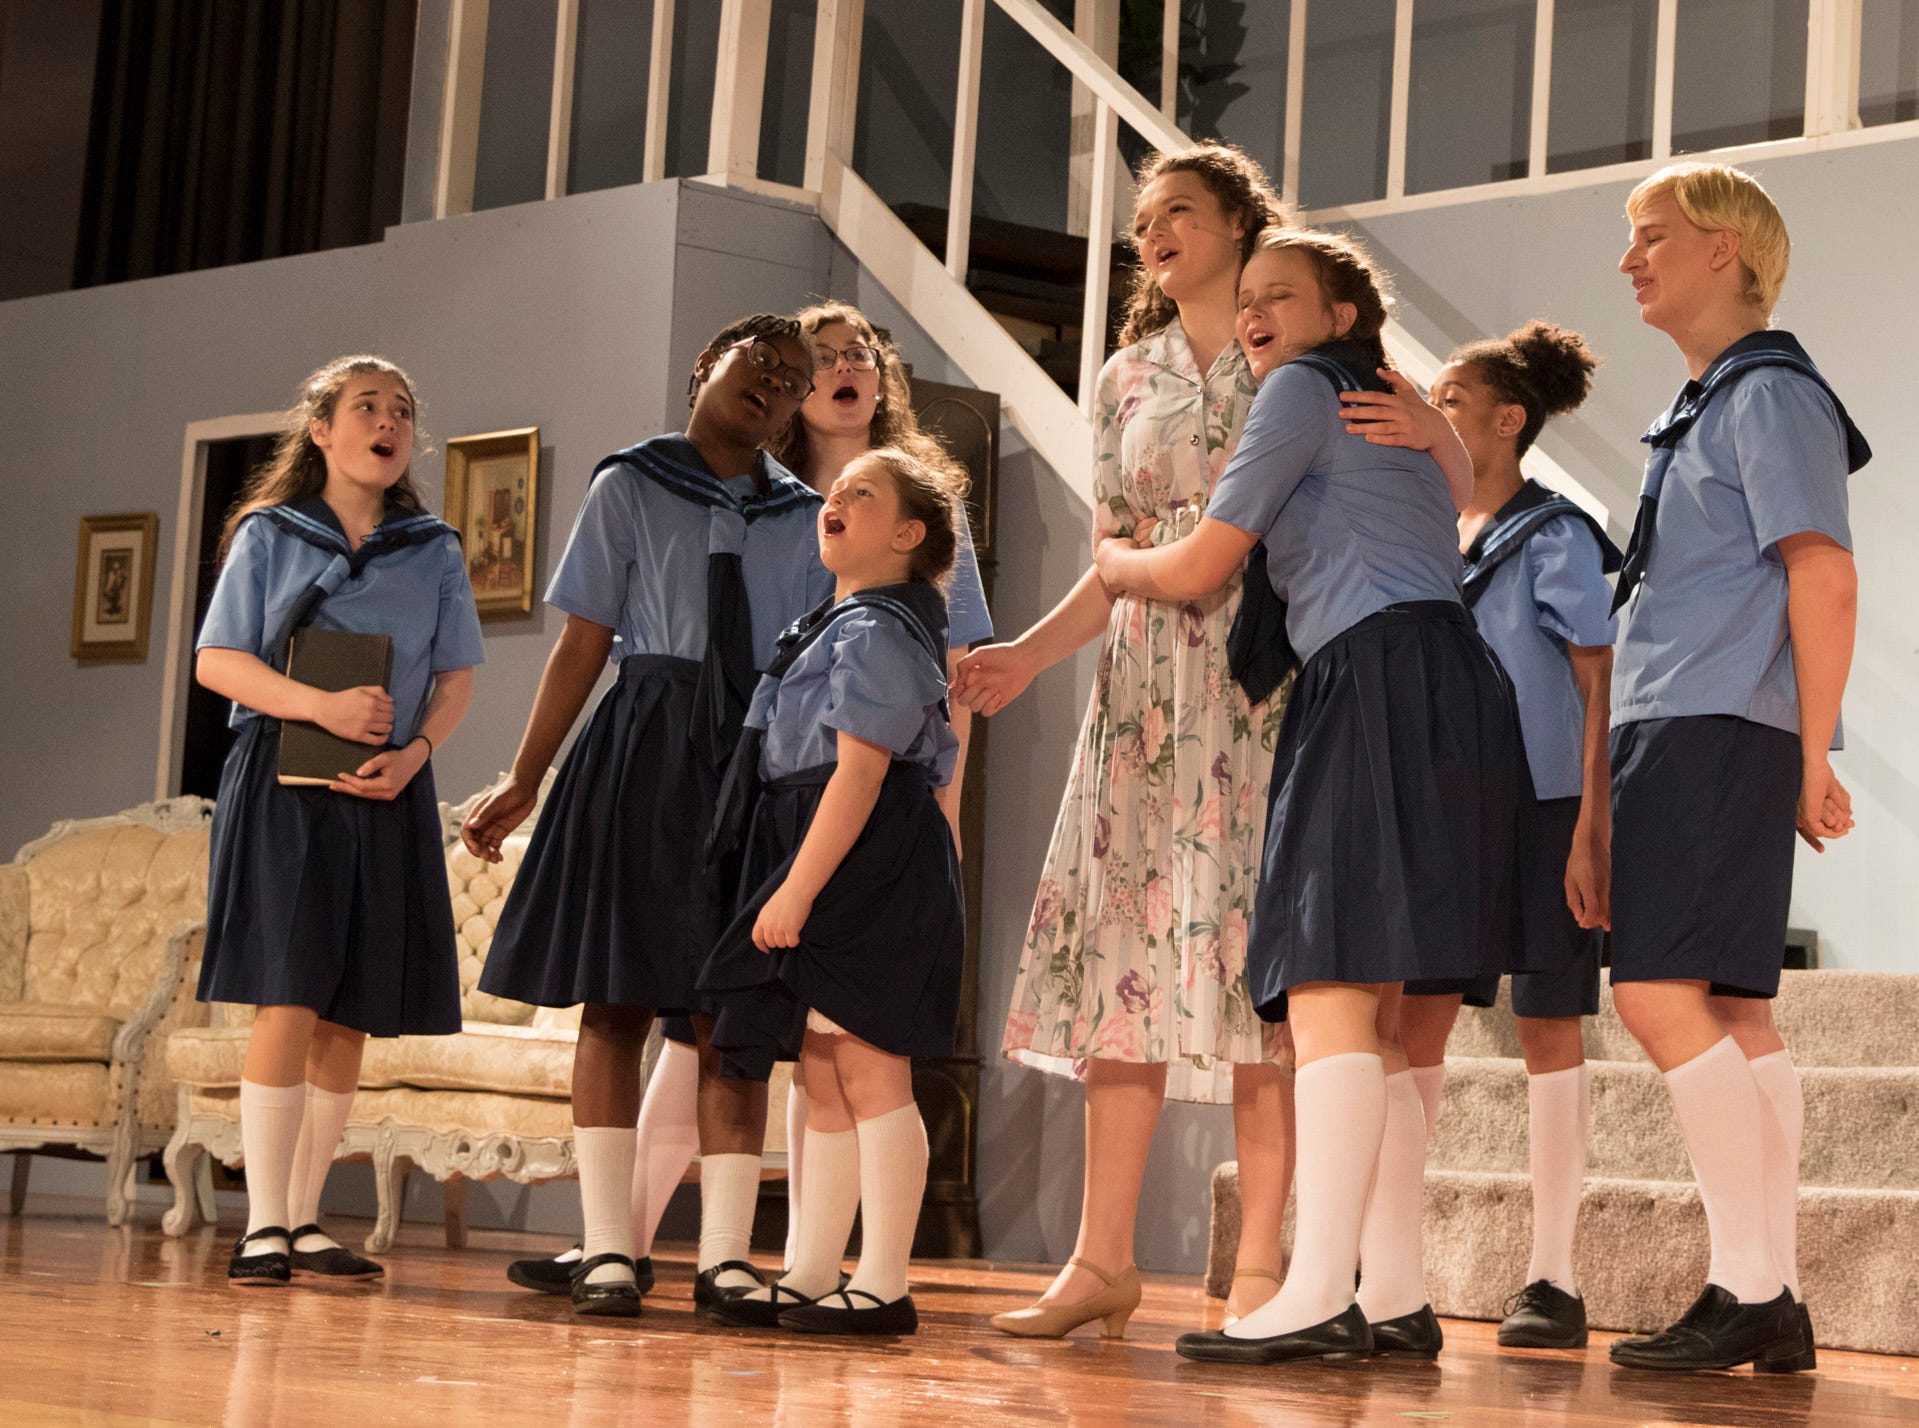 The von Trapp children excitedly welcome their governess Maria Rainer, played by Emily Schafer, back after she had left for a time to decide whether she should take her monastic vow or follow her heart and be with Captain von Trapp.